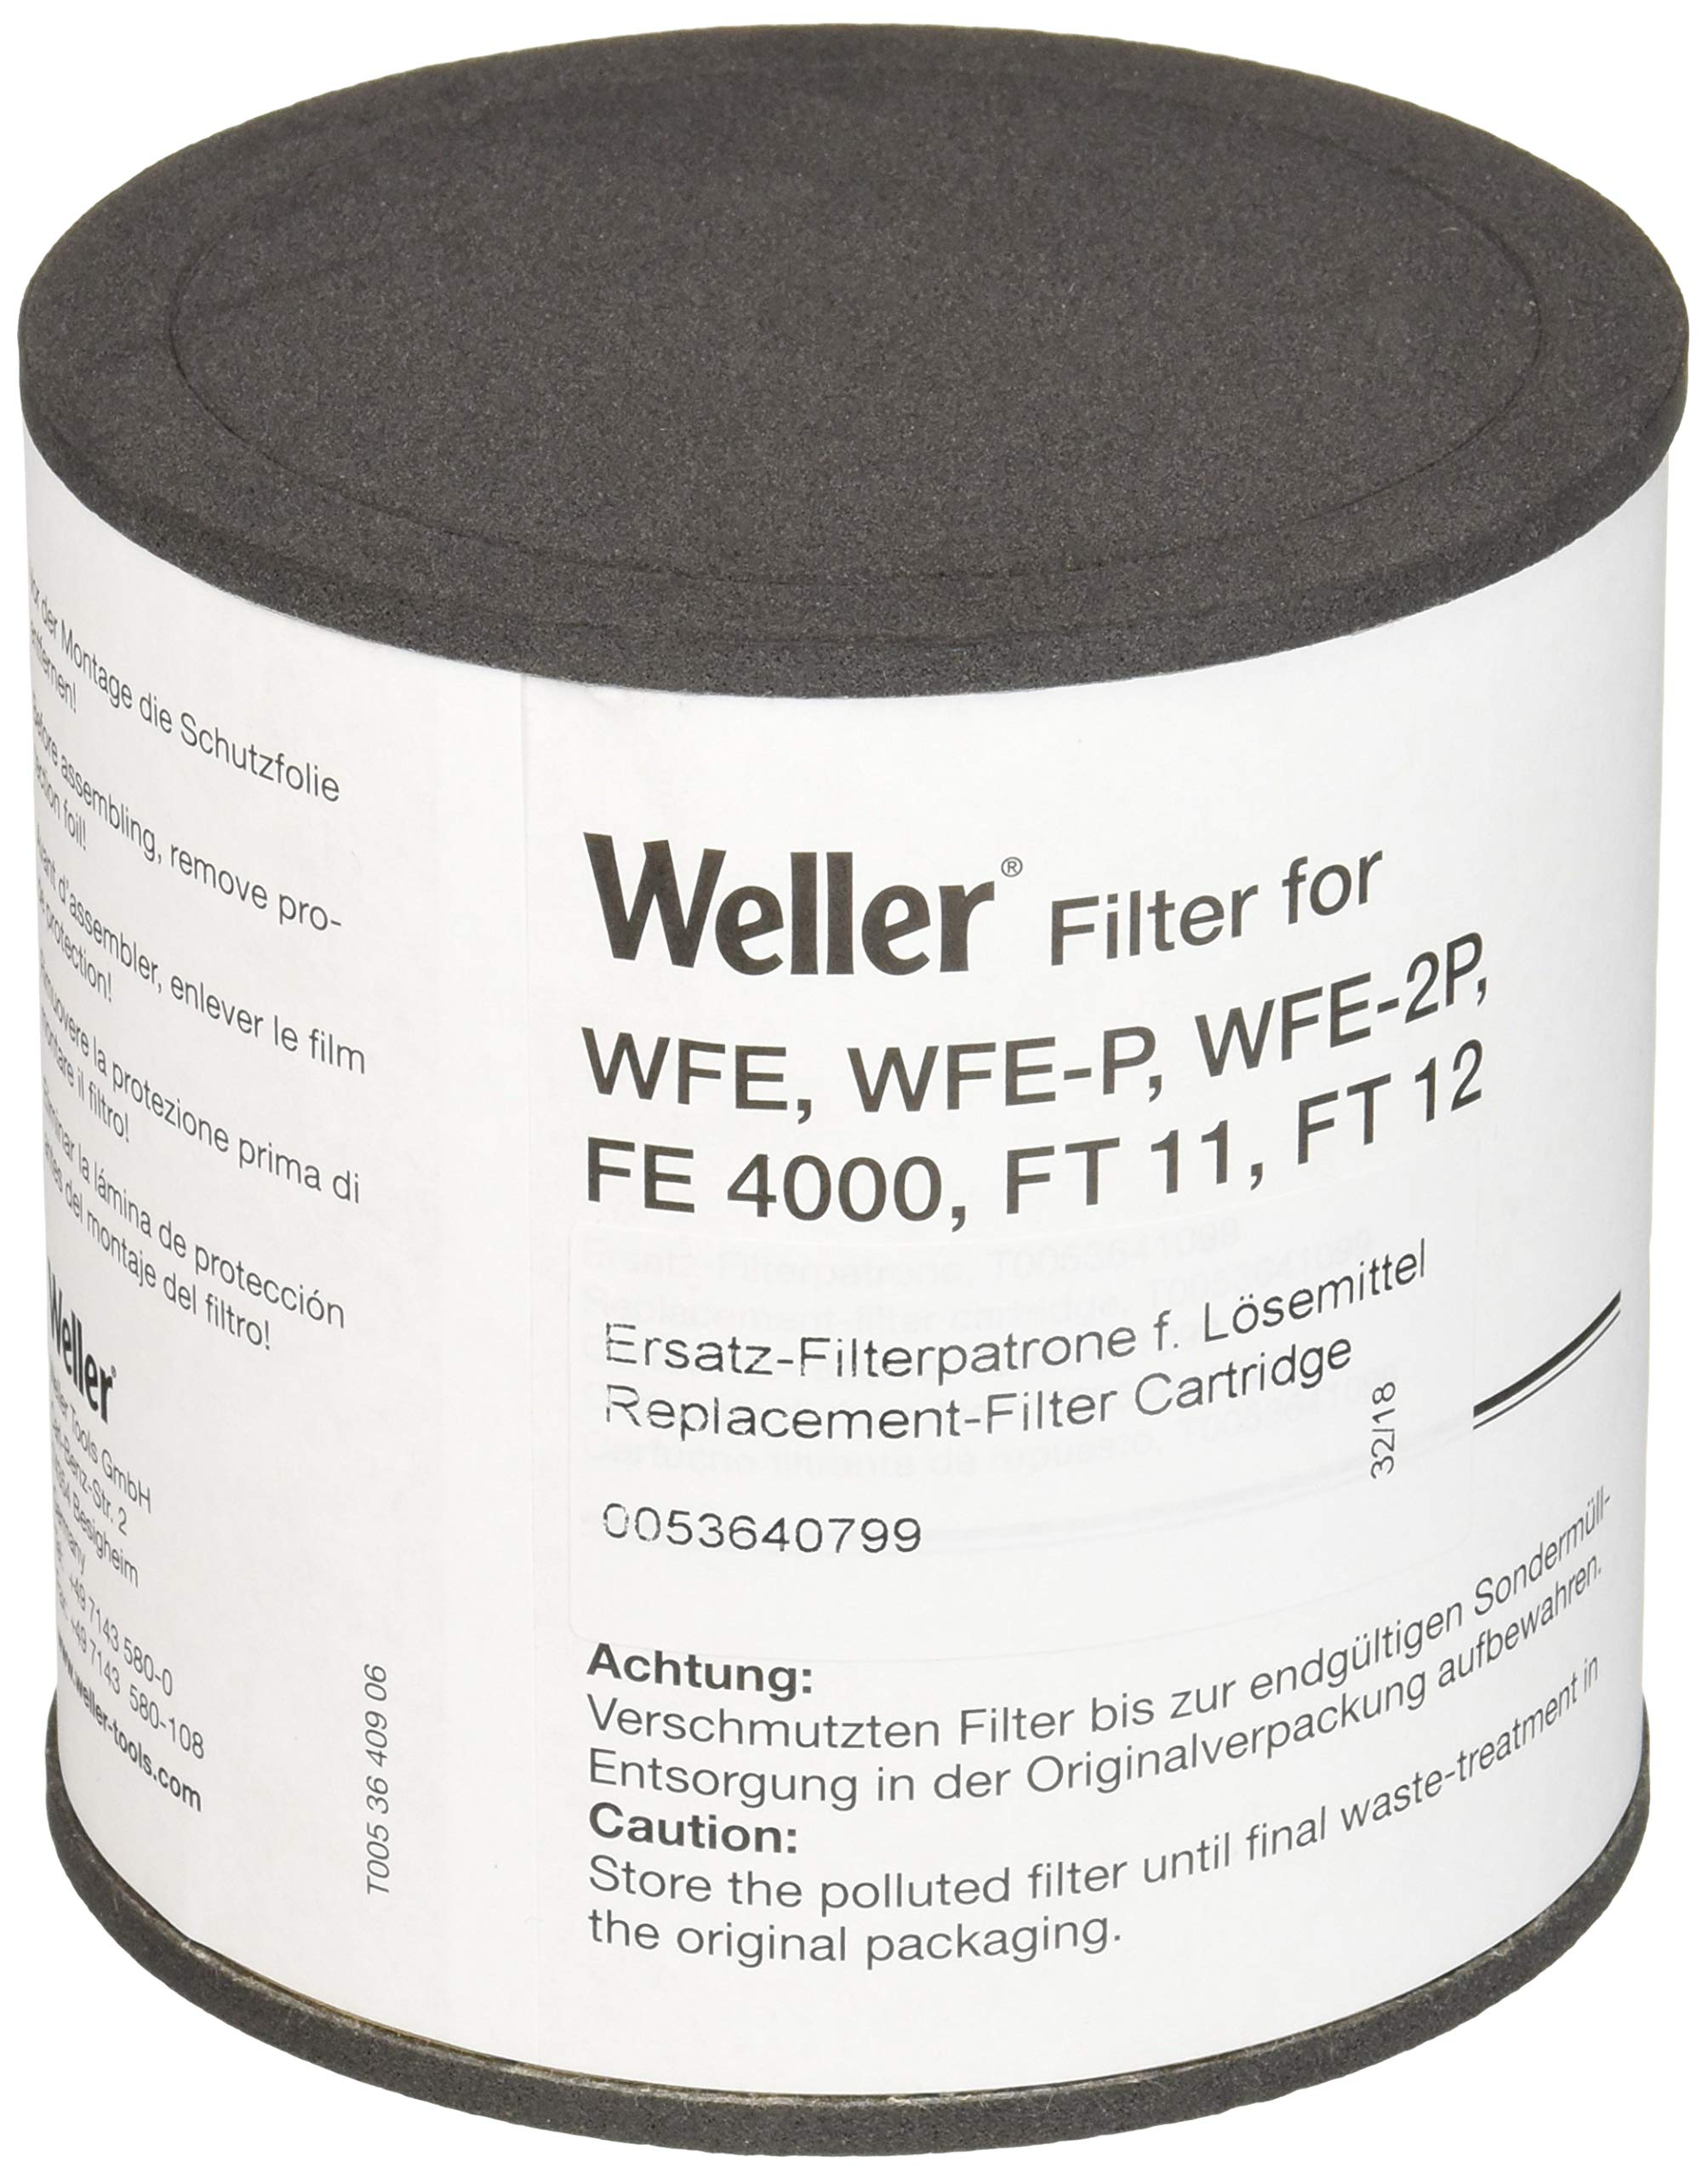 Weller T0053640799 Comp.Filter Aktivk. Wfe/Wfep/Ft11/Fe4000, Black